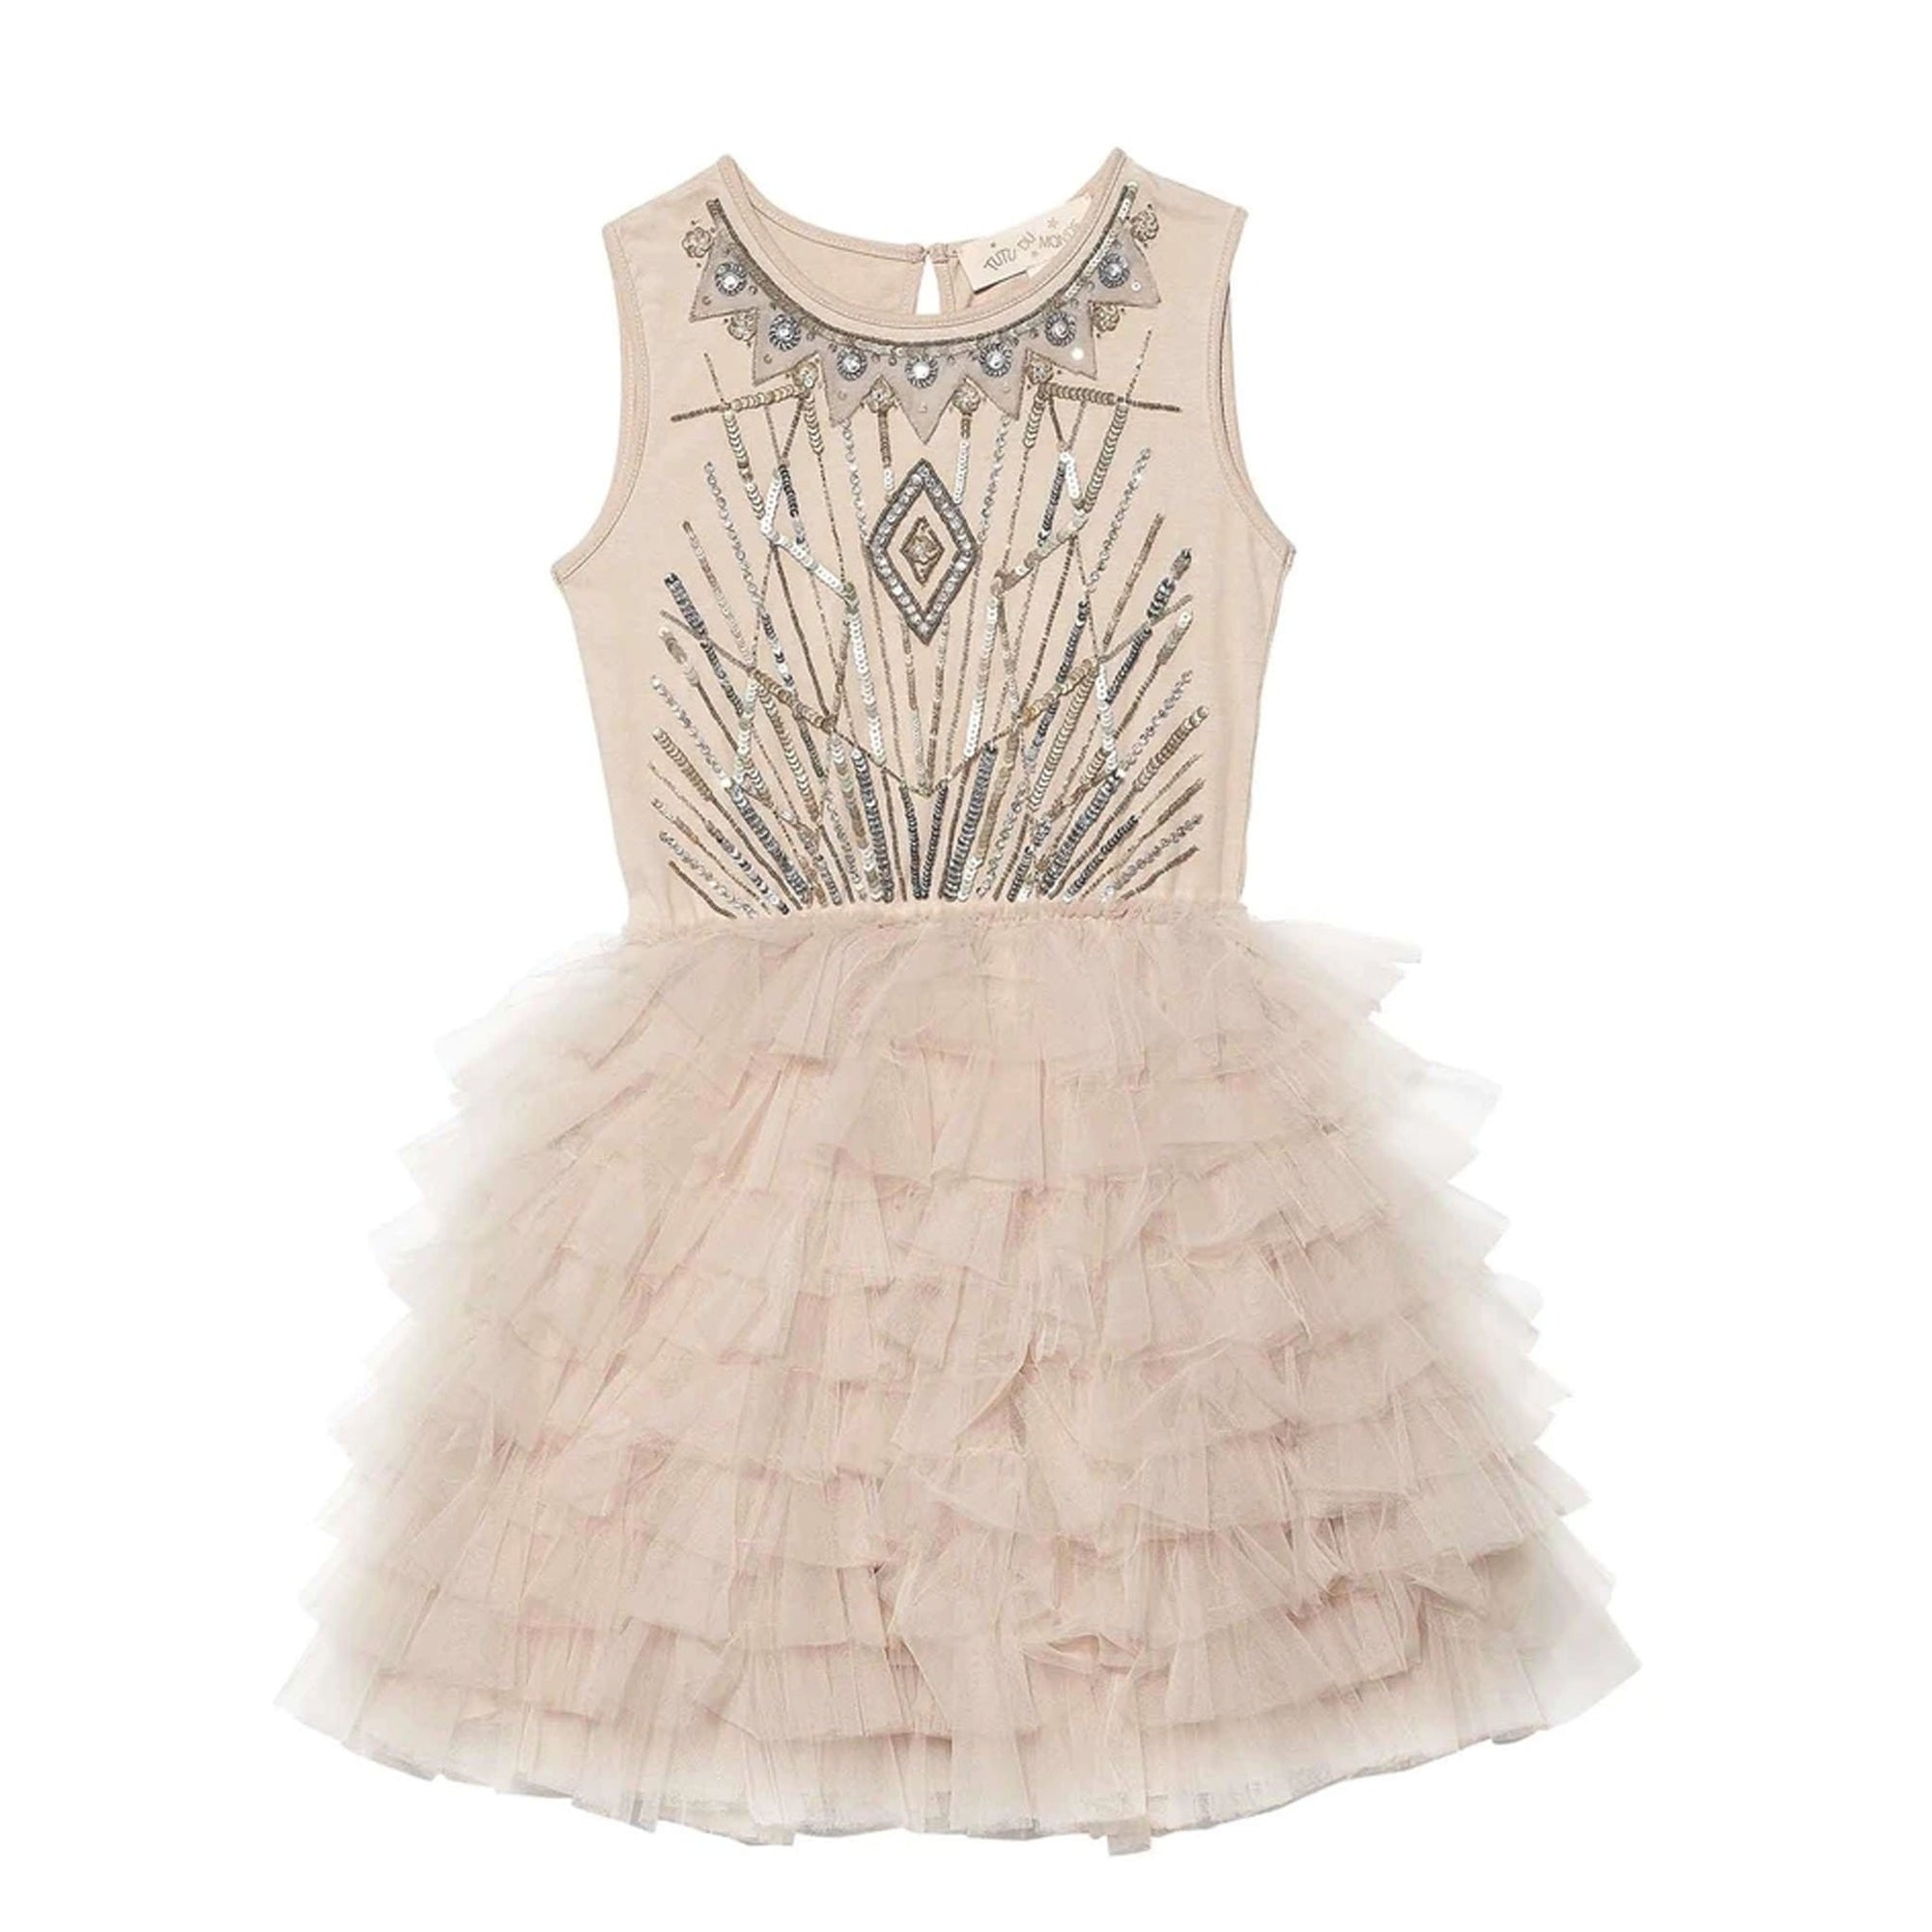 Tutu Du Monde Galena Tutu Dress - Apple Pie